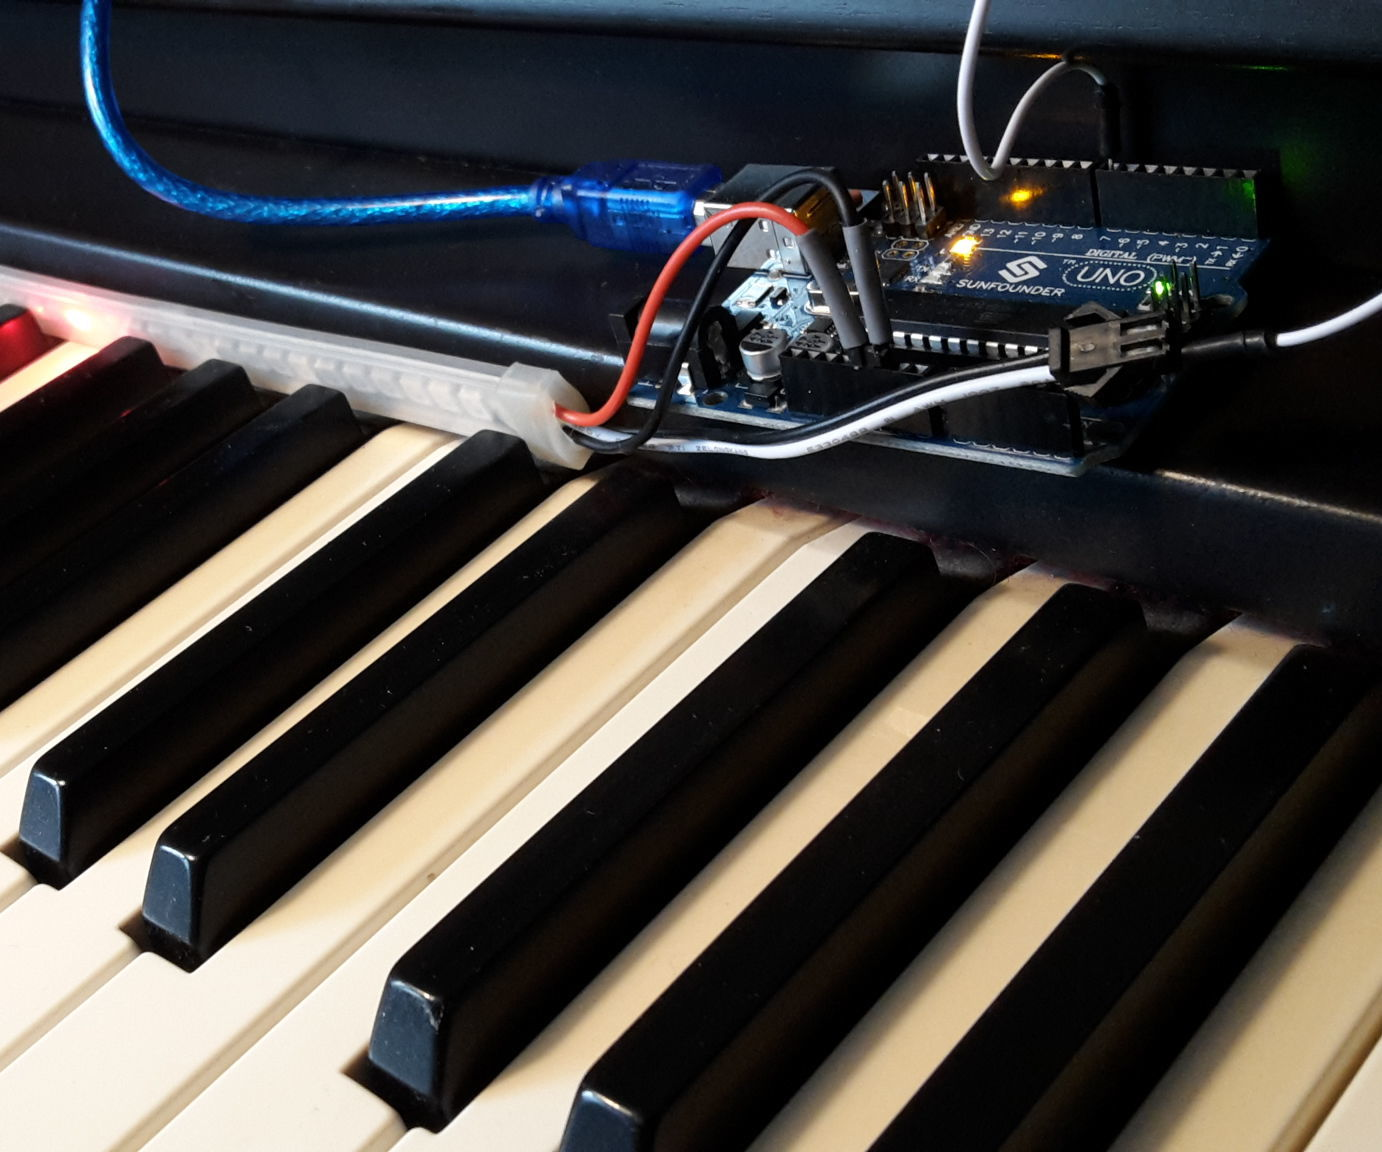 MuseScore+Arduino+LEDs+MIDI = Piano Tutor: 5 Steps (with Pictures)